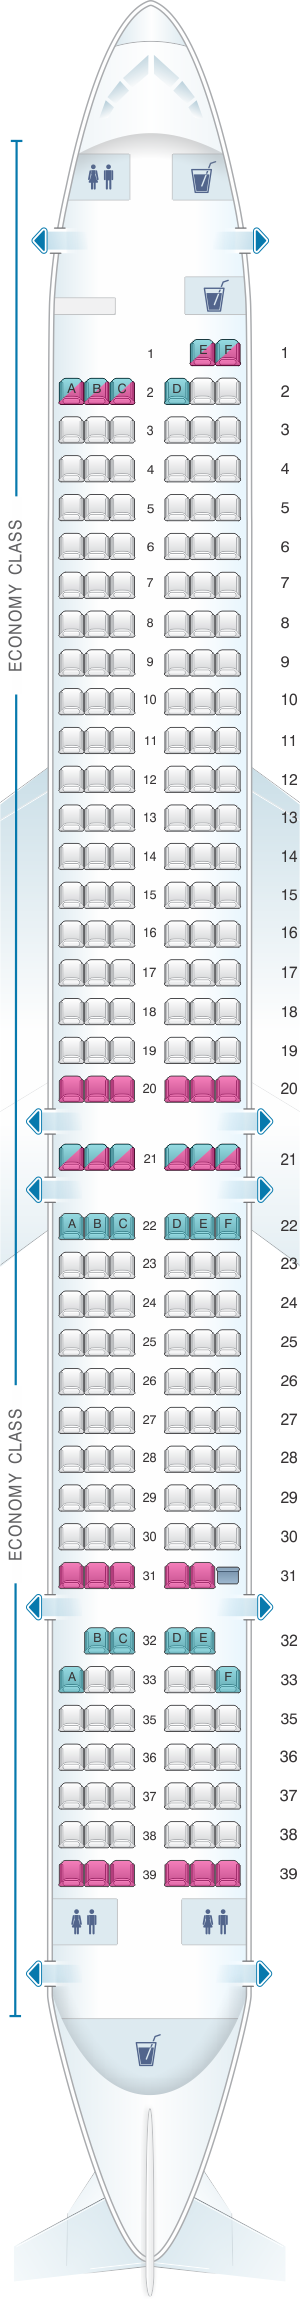 Seat map for Lion Air Boeing B737 MAX 9